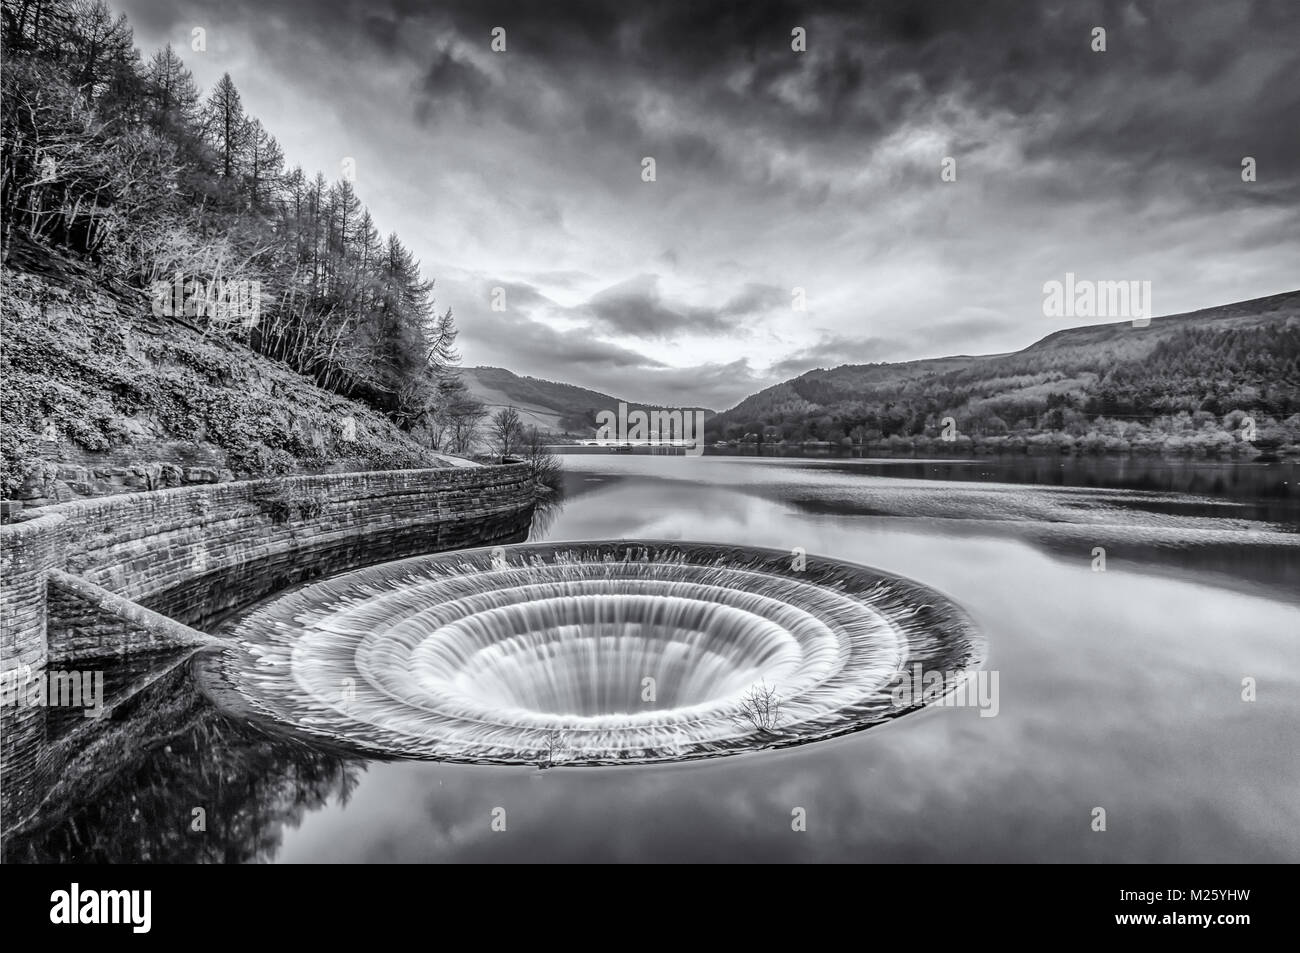 The 'plughole' at Ladybower reservoir in the Peak District.  Showing at full flow on a cold, overcast day. - Stock Image